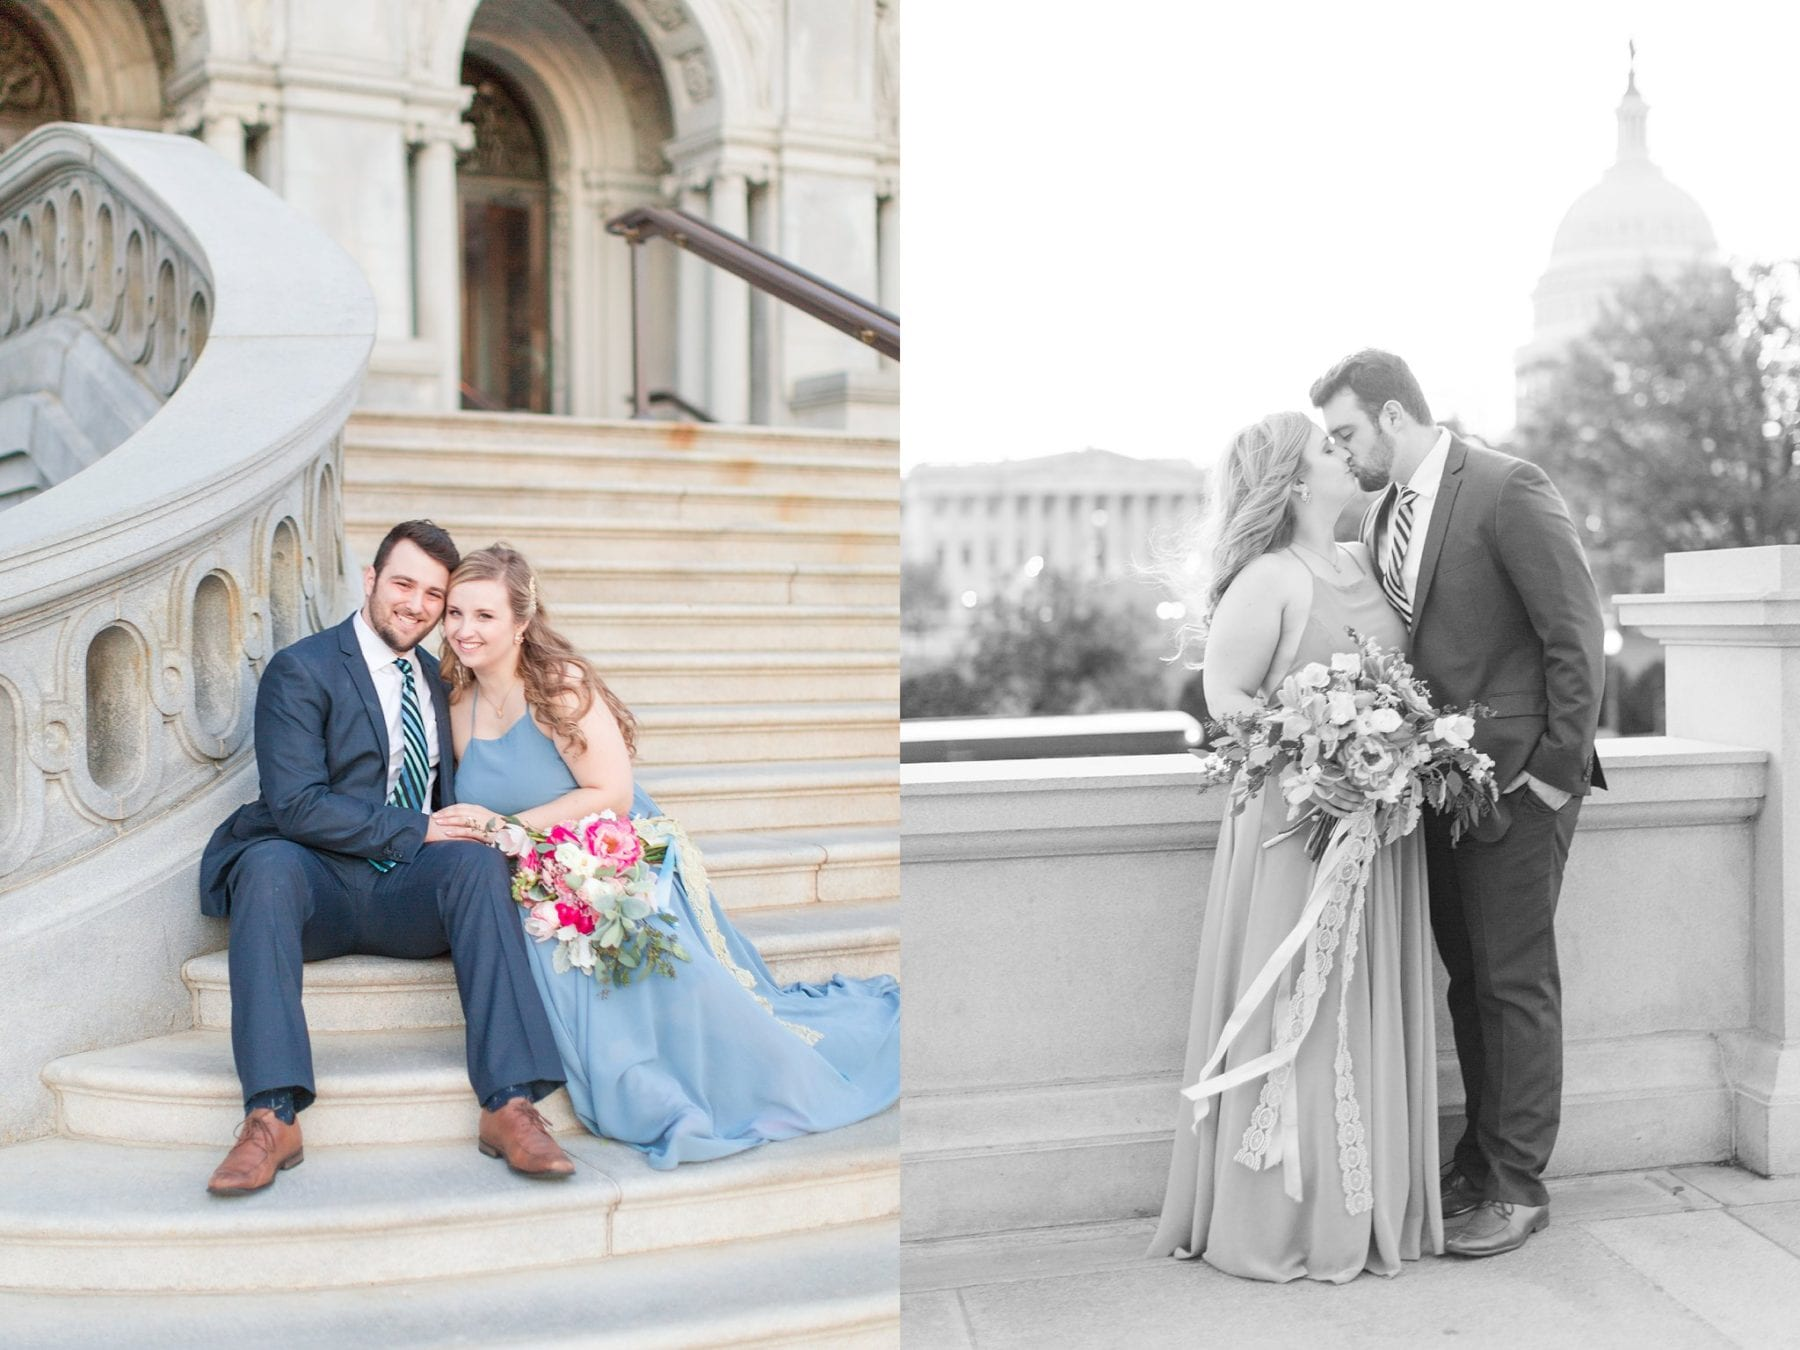 Capitol Hill Engagement Photos Kelly & Zach Washington DC Wedding Photographer Megan Kelsey Photography-354.jpg